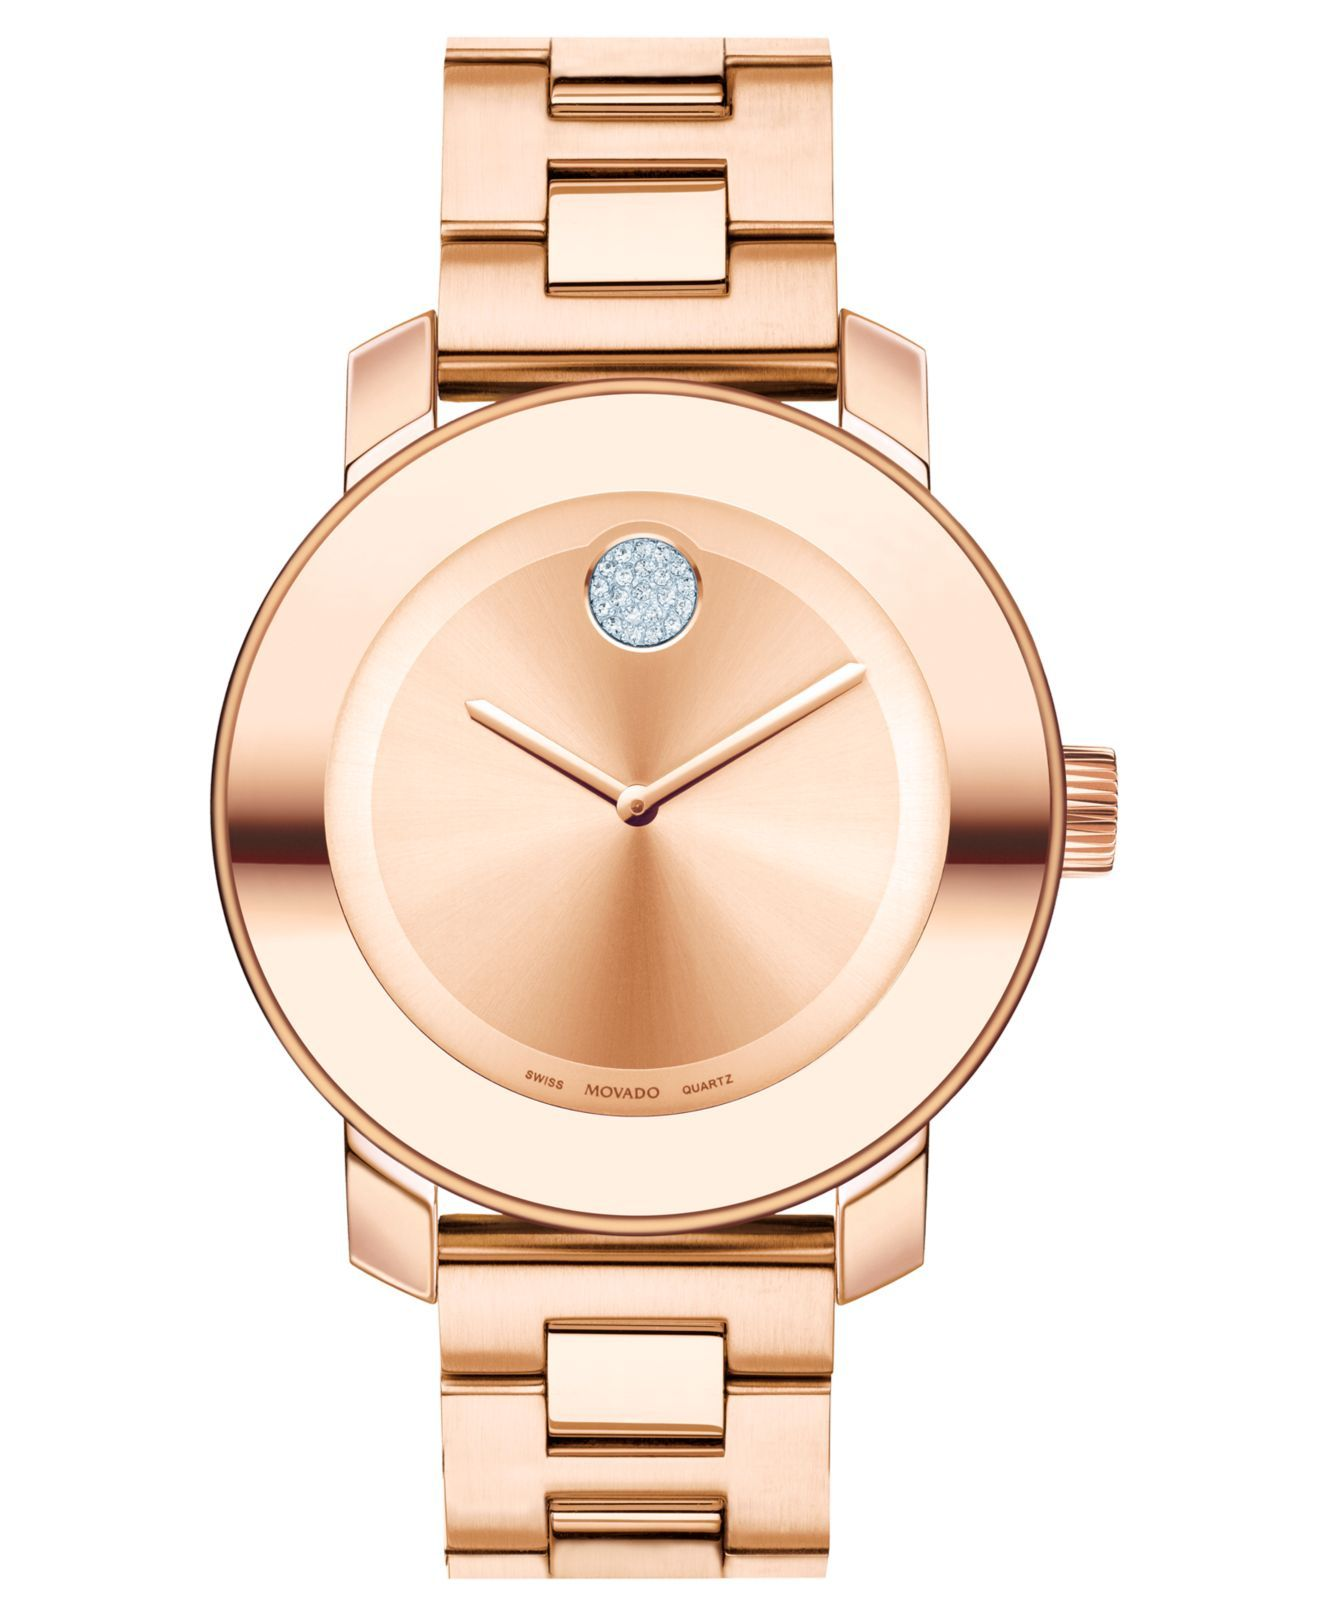 95352bd8b10 Women s Swiss Bold Rose Gold Ion-Plated Stainless Steel Bracelet ...